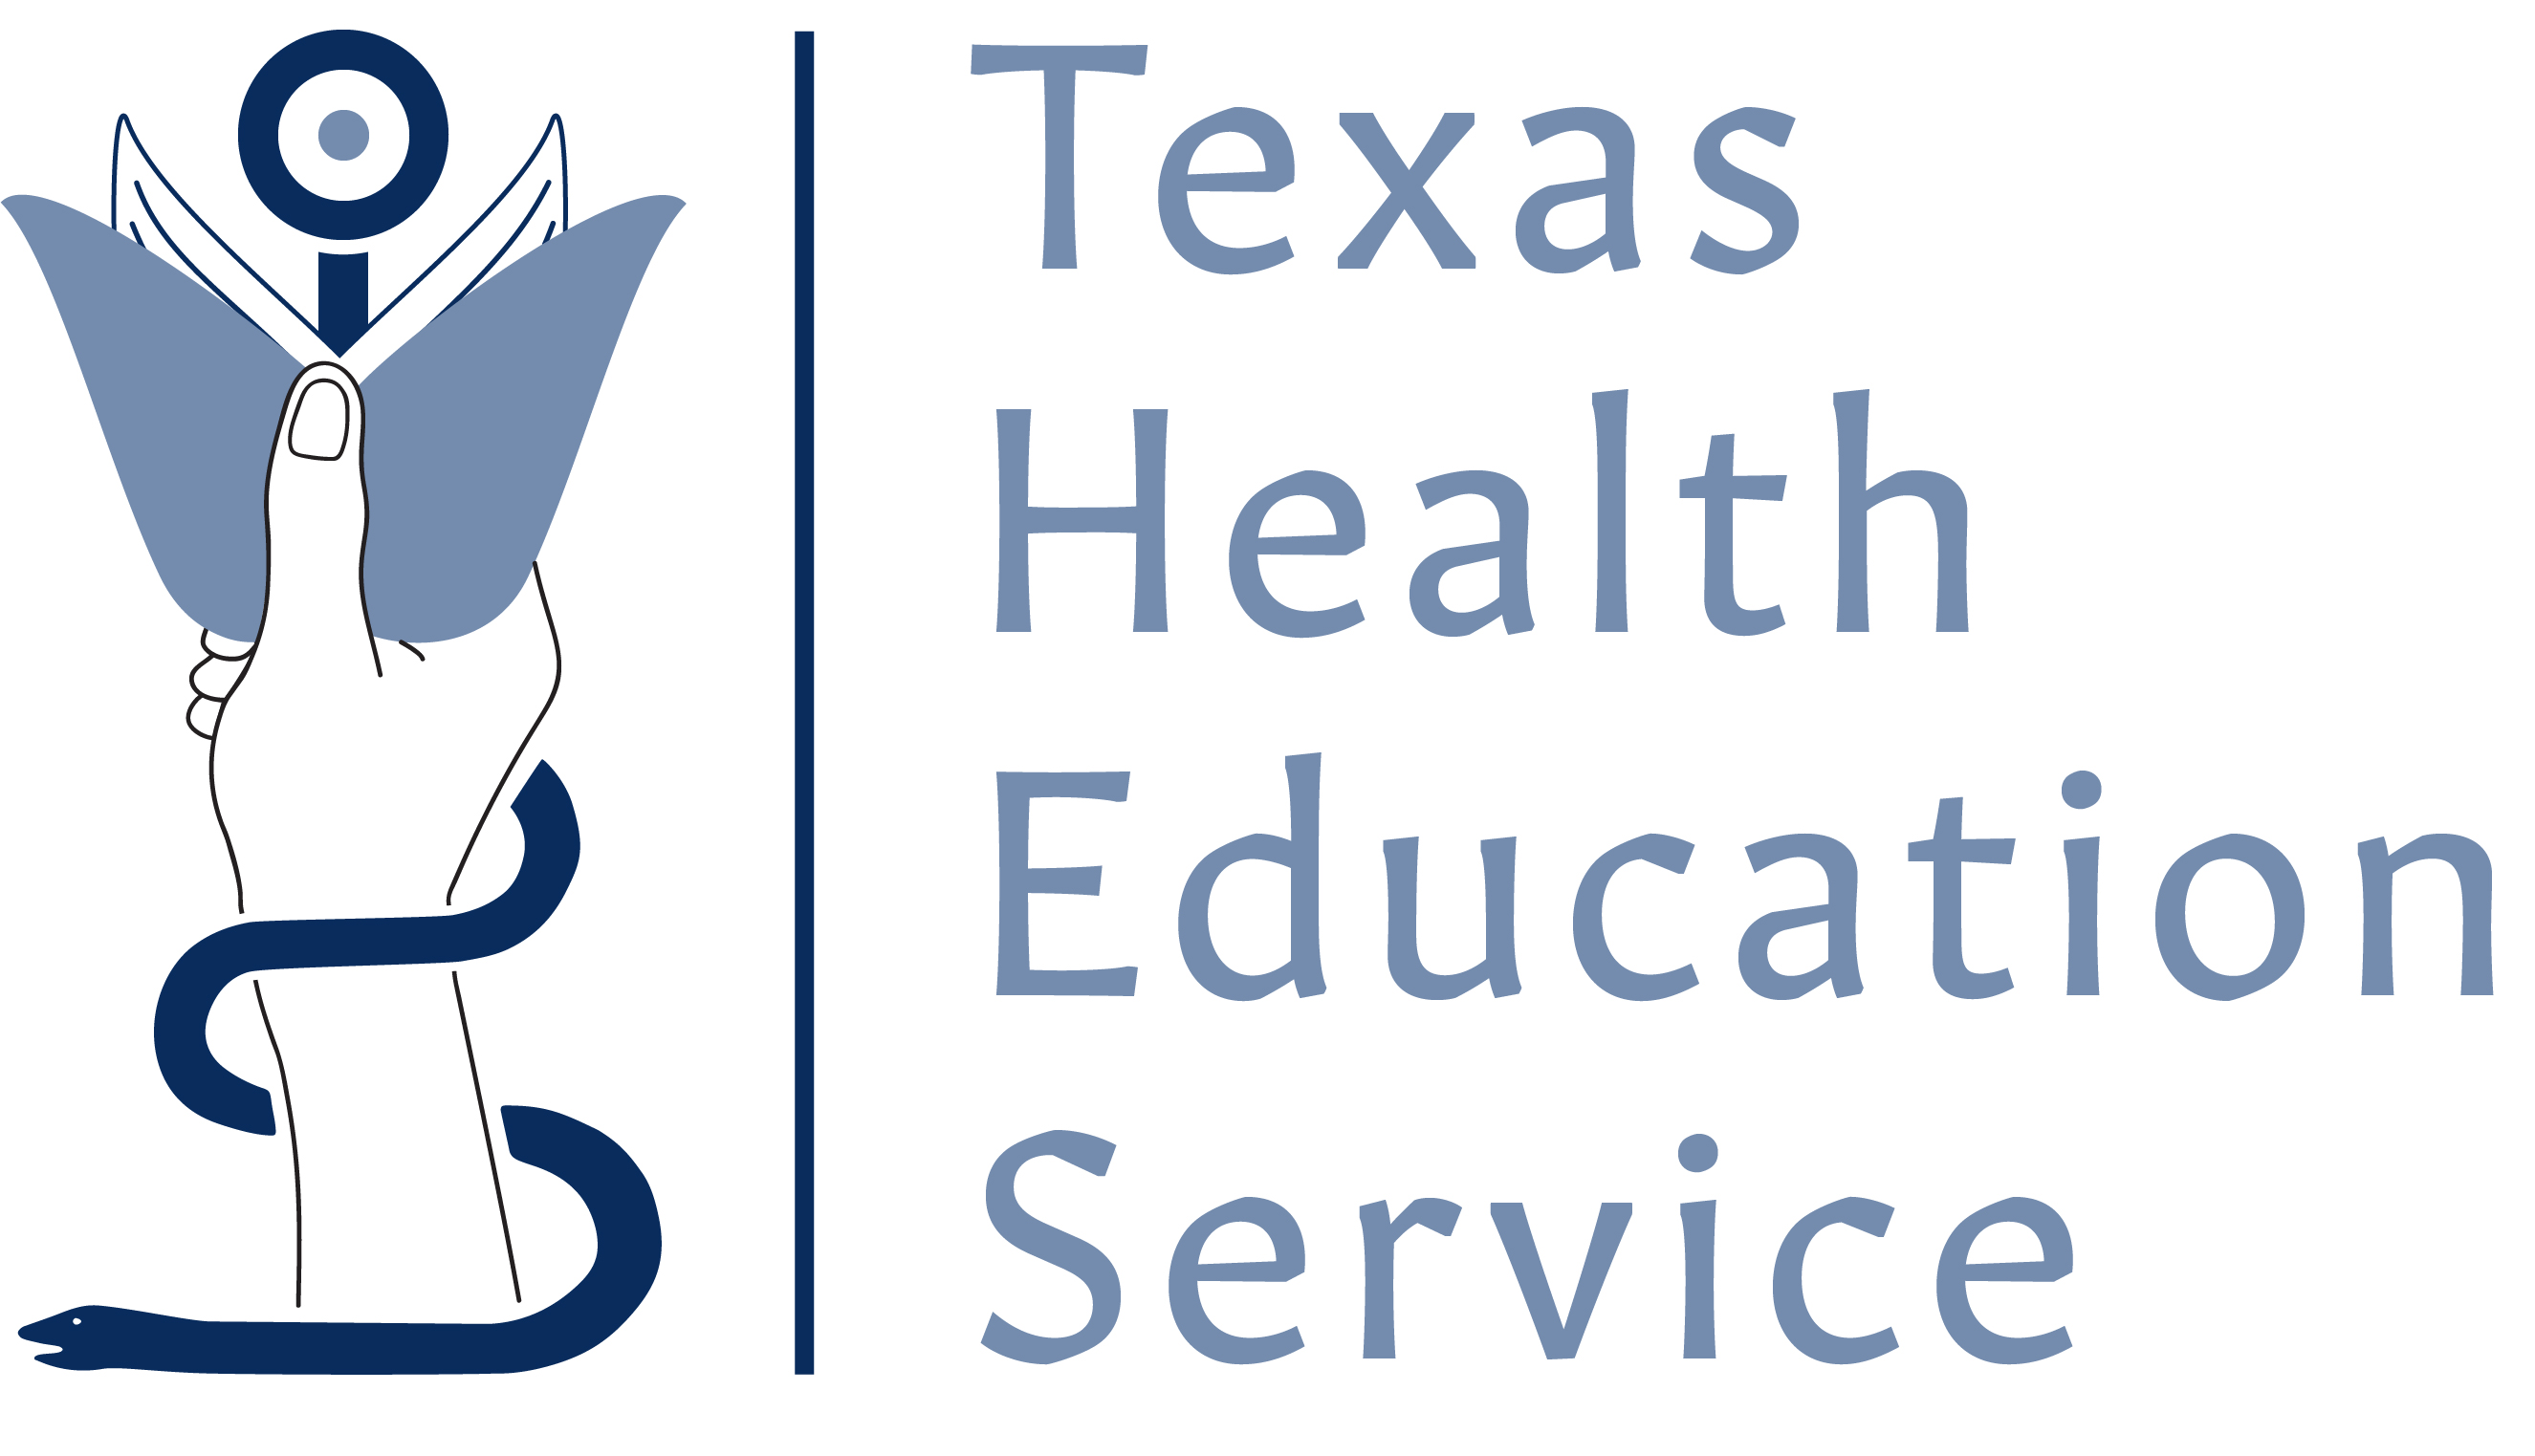 Texas Health Education Service